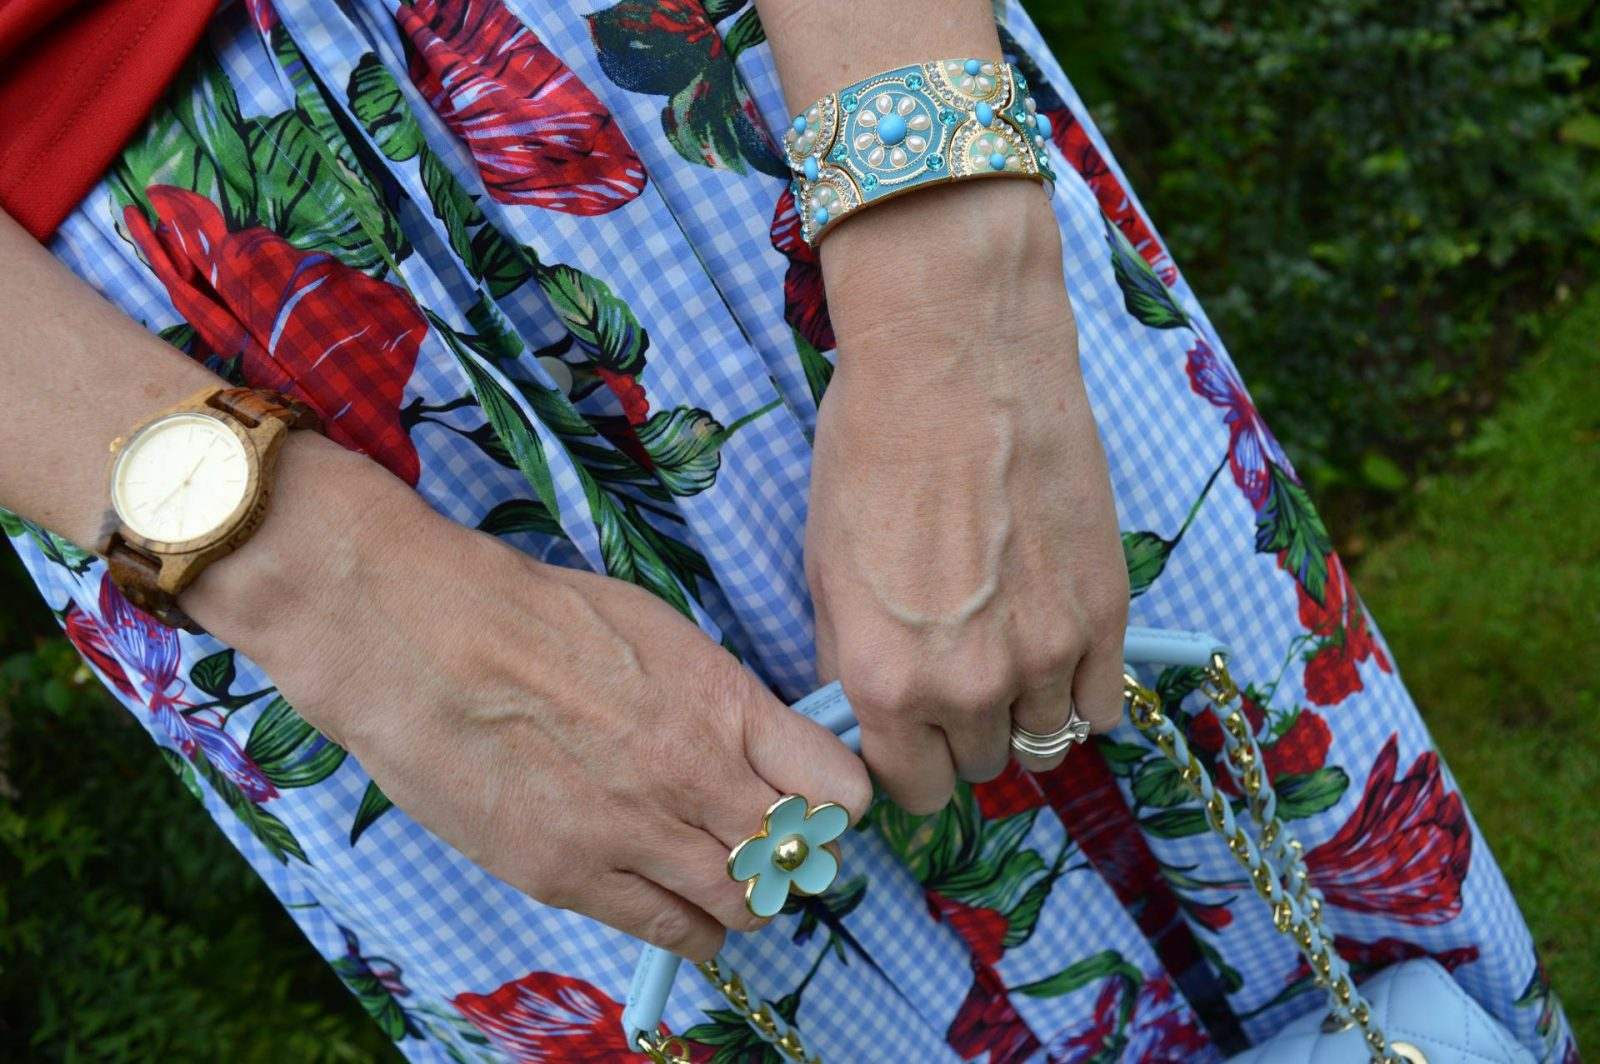 Red One Shoulder Top and Gingham Floral Skirt Zara gingham floral print skirt Love Moschino bag Jord wood watch